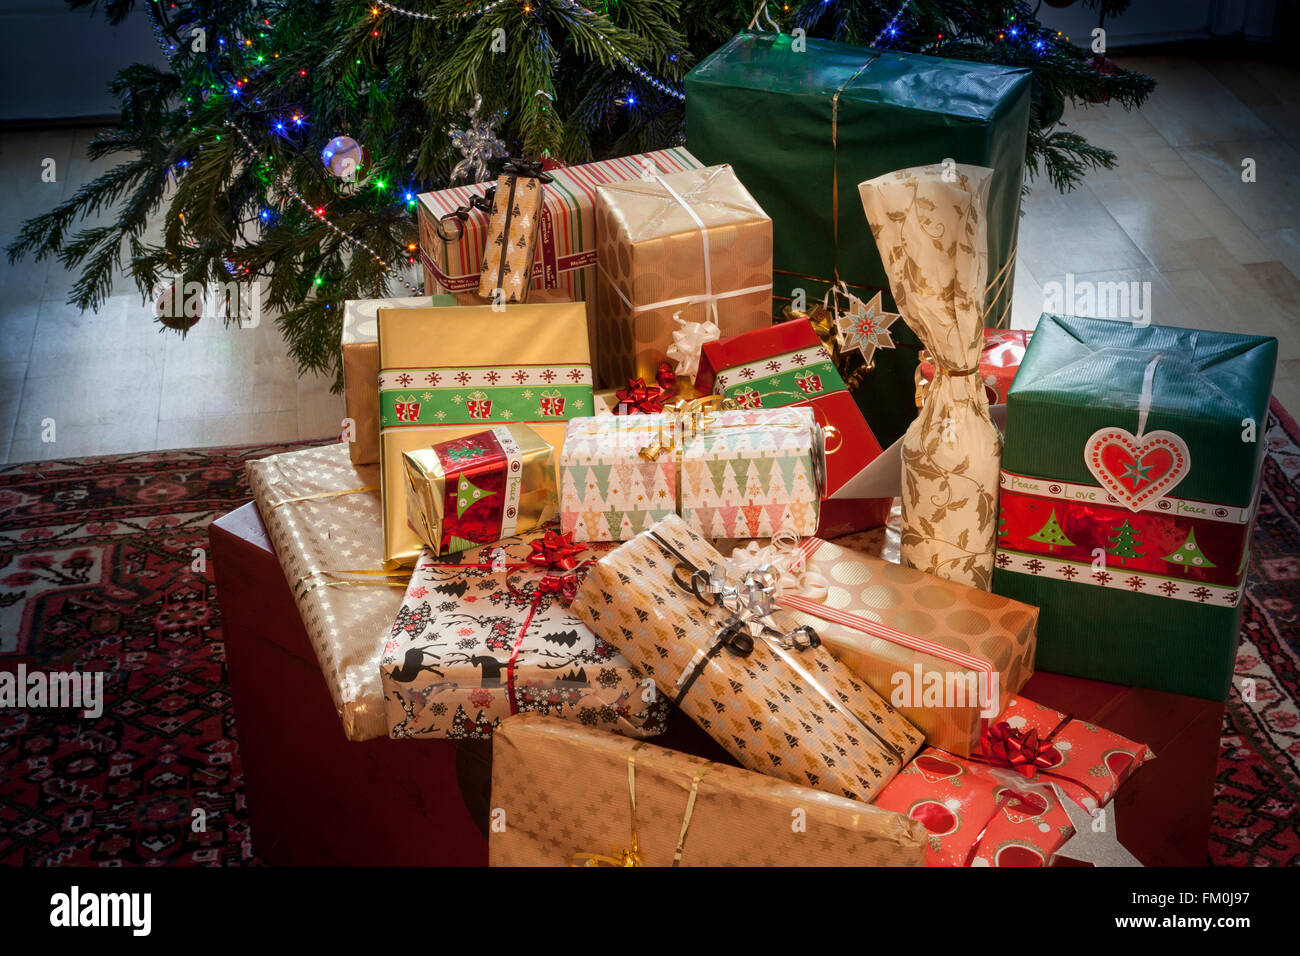 A pile of elegantly wrapped Christmas gifts. Part of a Christmas tree with lights forms the background. - Stock Image